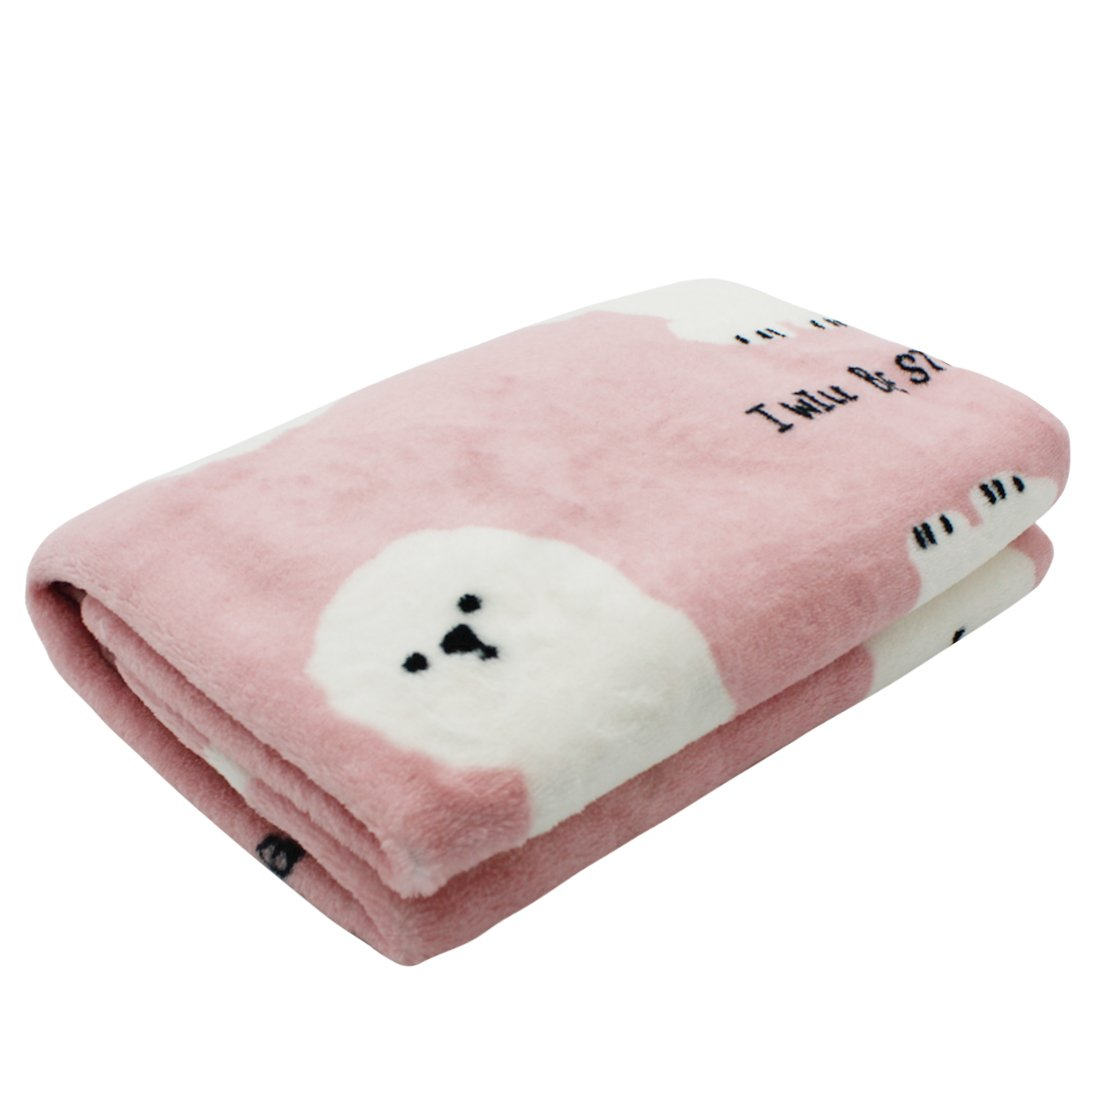 Scheppend Cozy Cuddly Pet Fleece Blanket Dogs Cats Bed Throws for Couch,Car Backseat,Crate,Kennel and Carrier(Bichon)